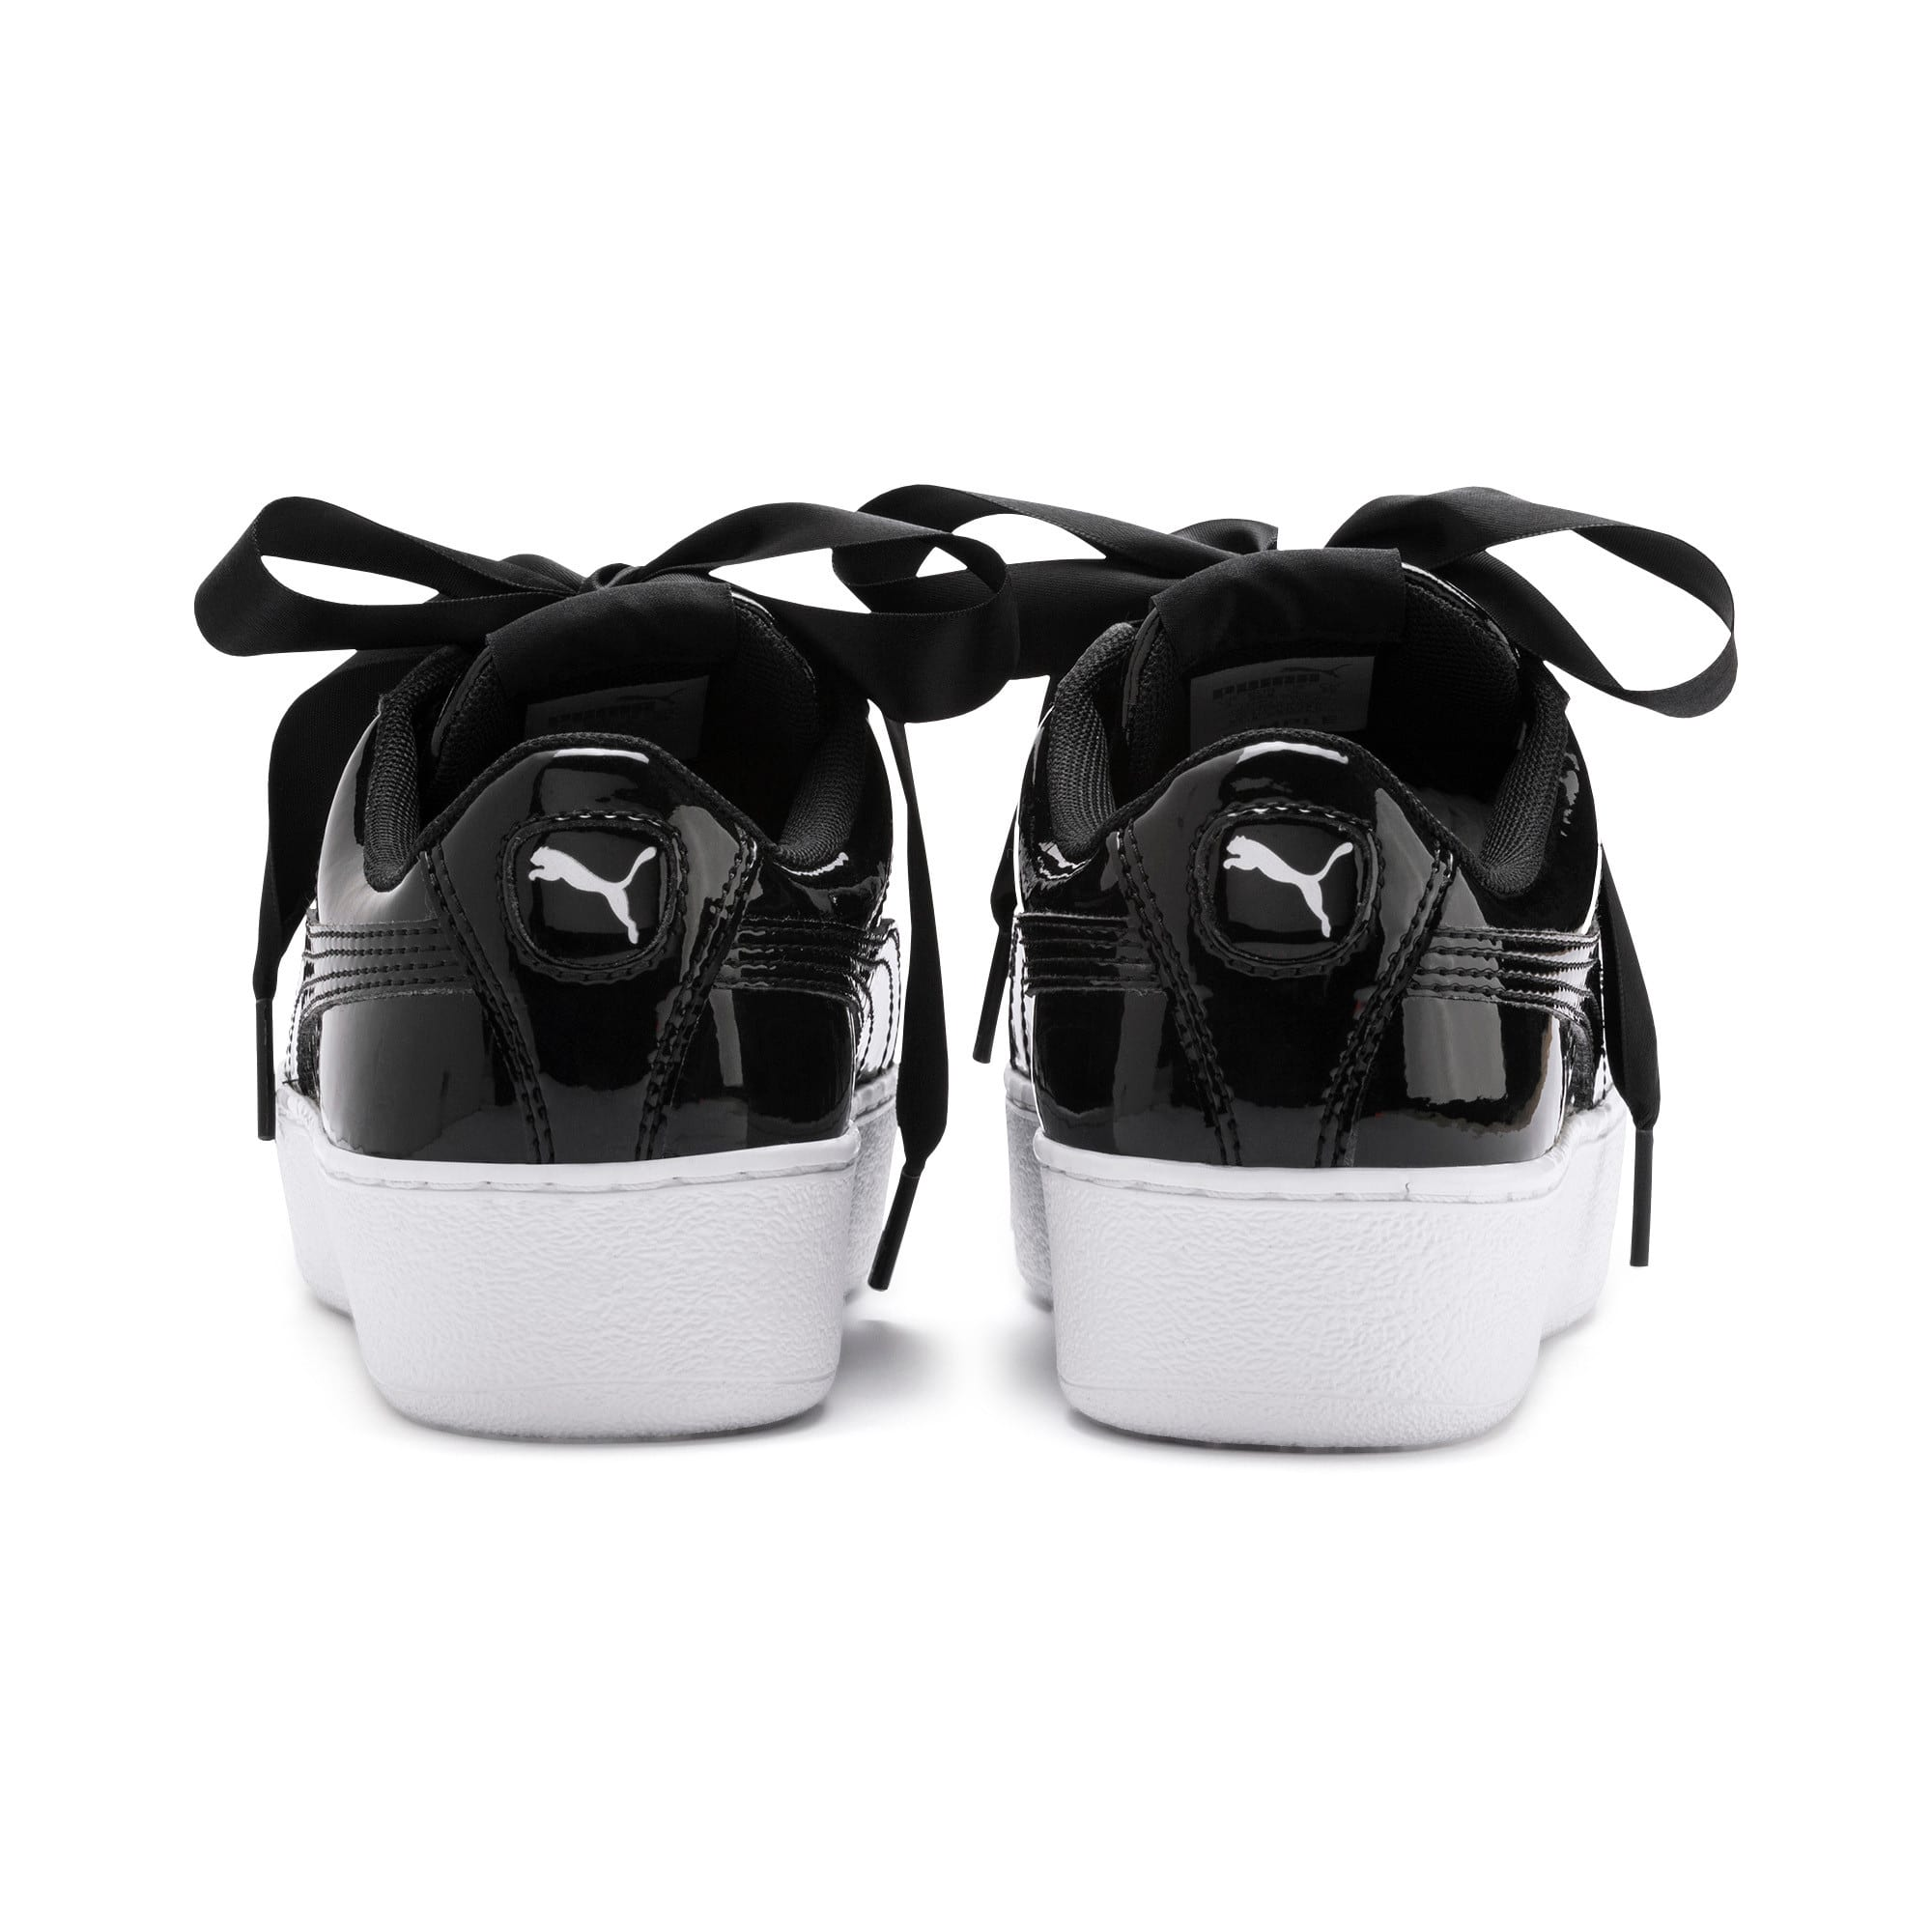 Thumbnail 3 of Vikky Platform Ribbon Patent Girls' Trainers, Puma Black-Puma Black, medium